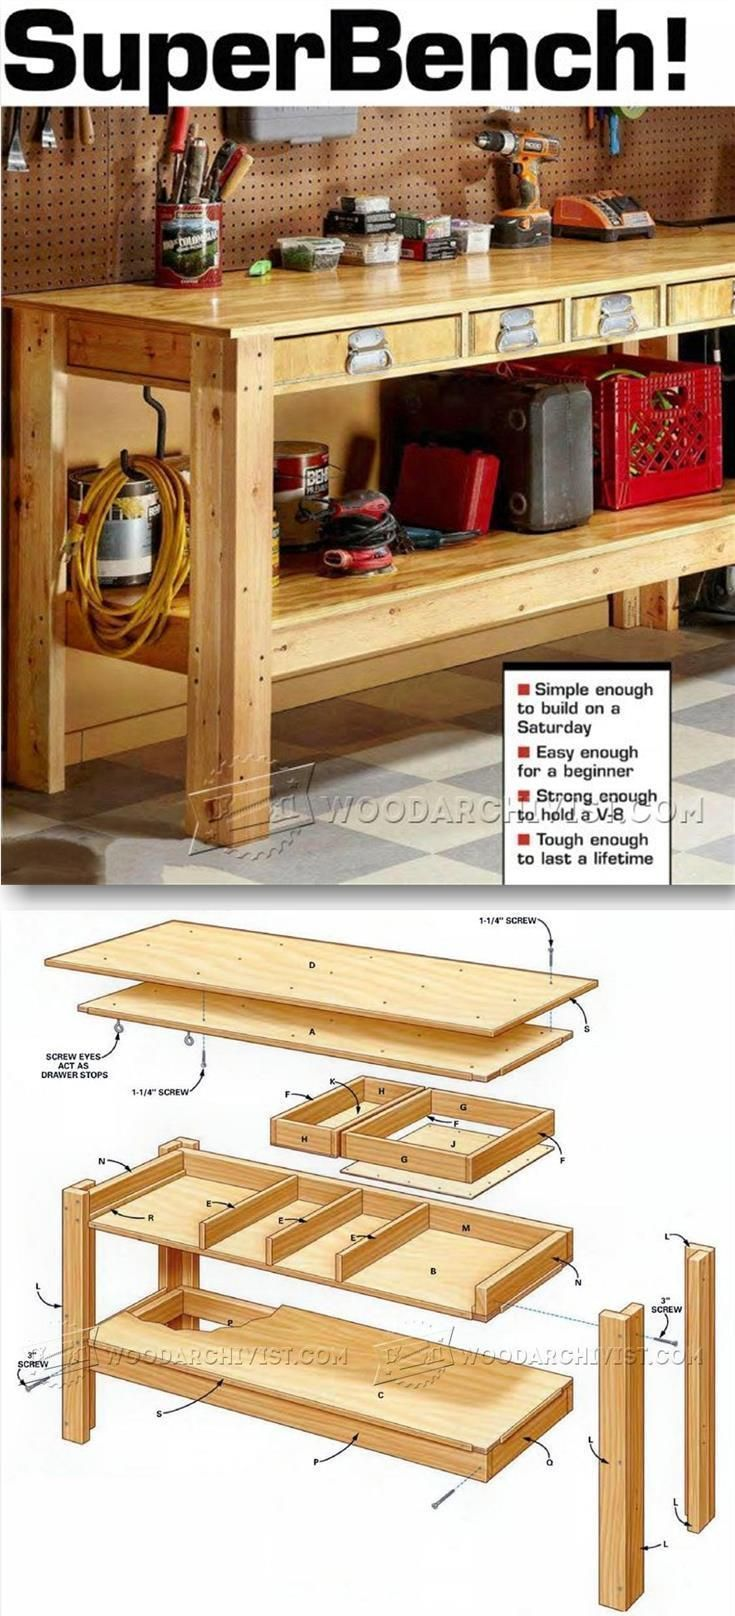 Simple Workbench Plans - Workshop Solutions Projects, Tips and Tricks | http://WoodArchivist.com/?utm_content=buffer78bfe&utm_medium=social&utm_source=pinterest.com&utm_campaign=buffer